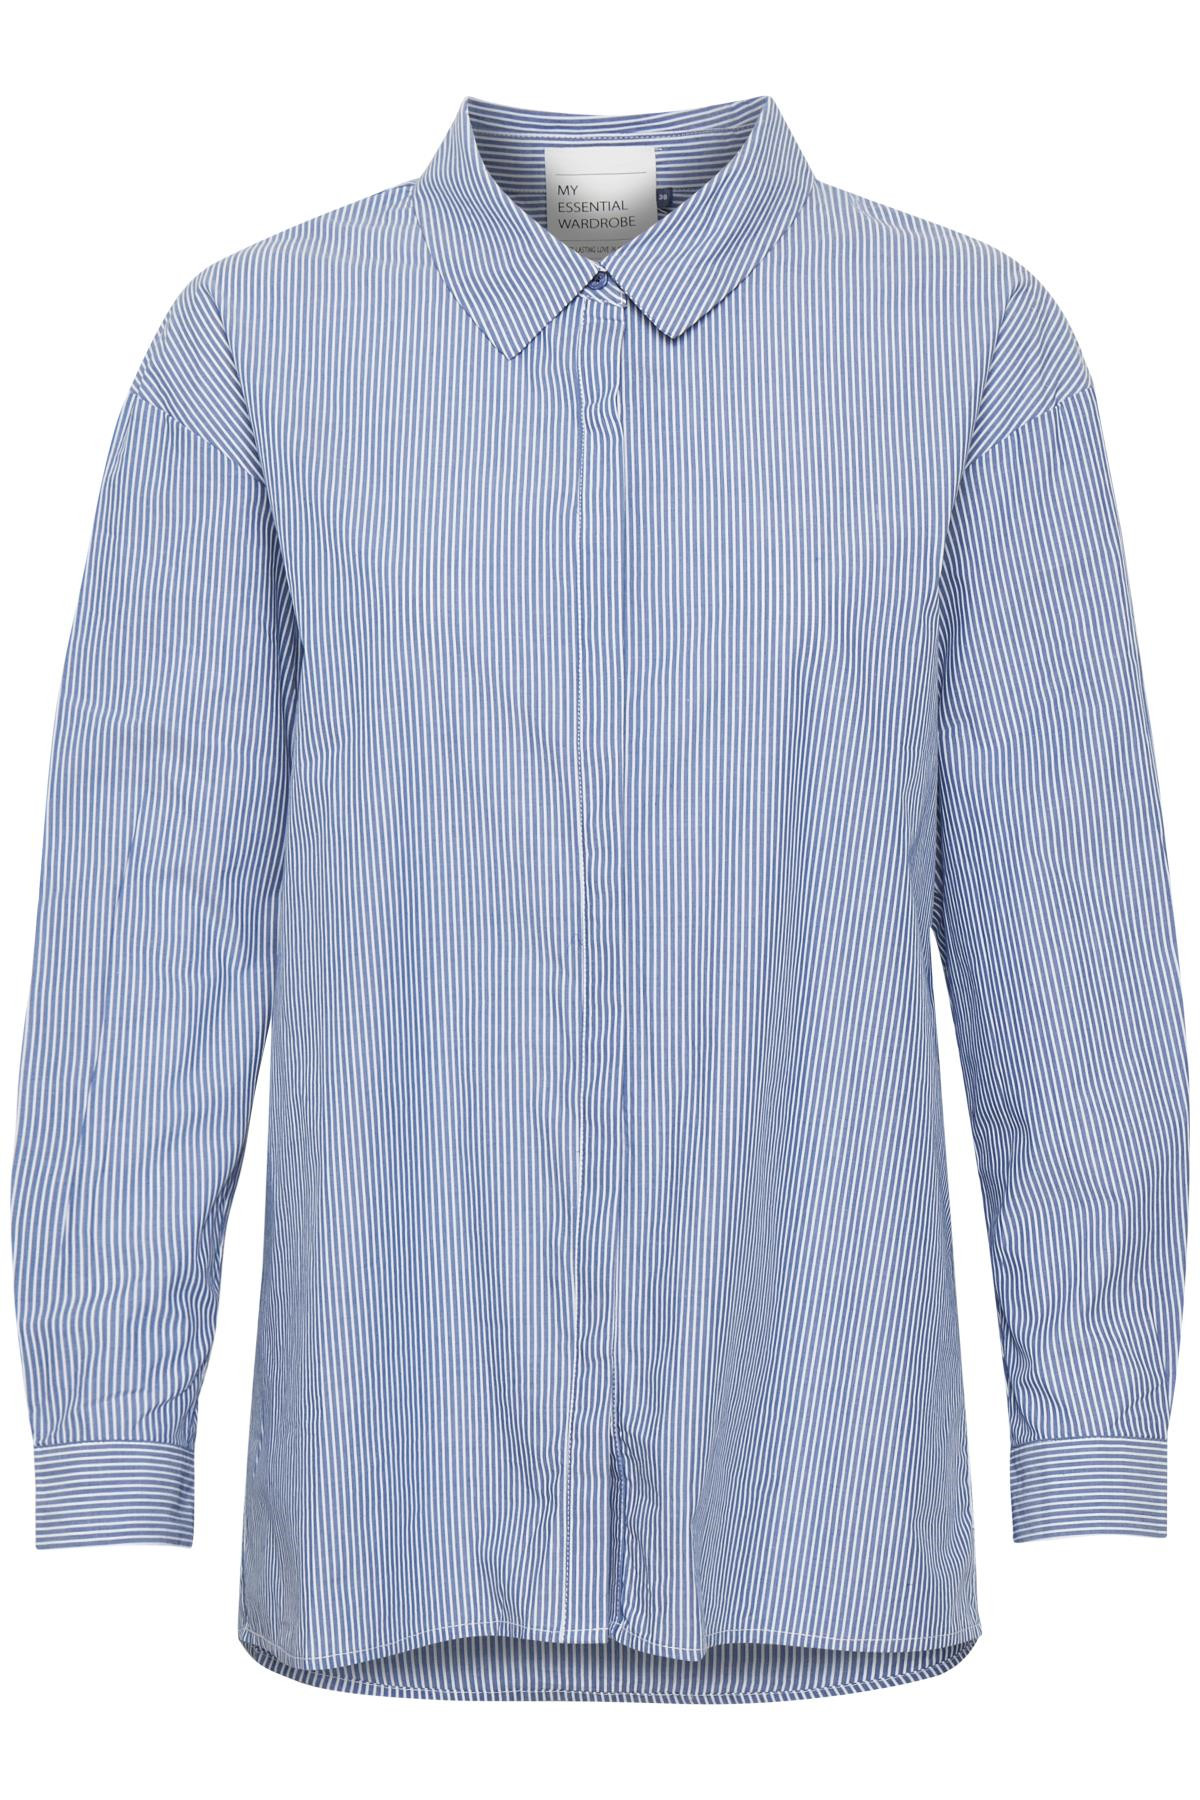 Image of   Denim Hunter 03 THE SHIRT 10702539 S (Striped Medium Blue 38076, 46)